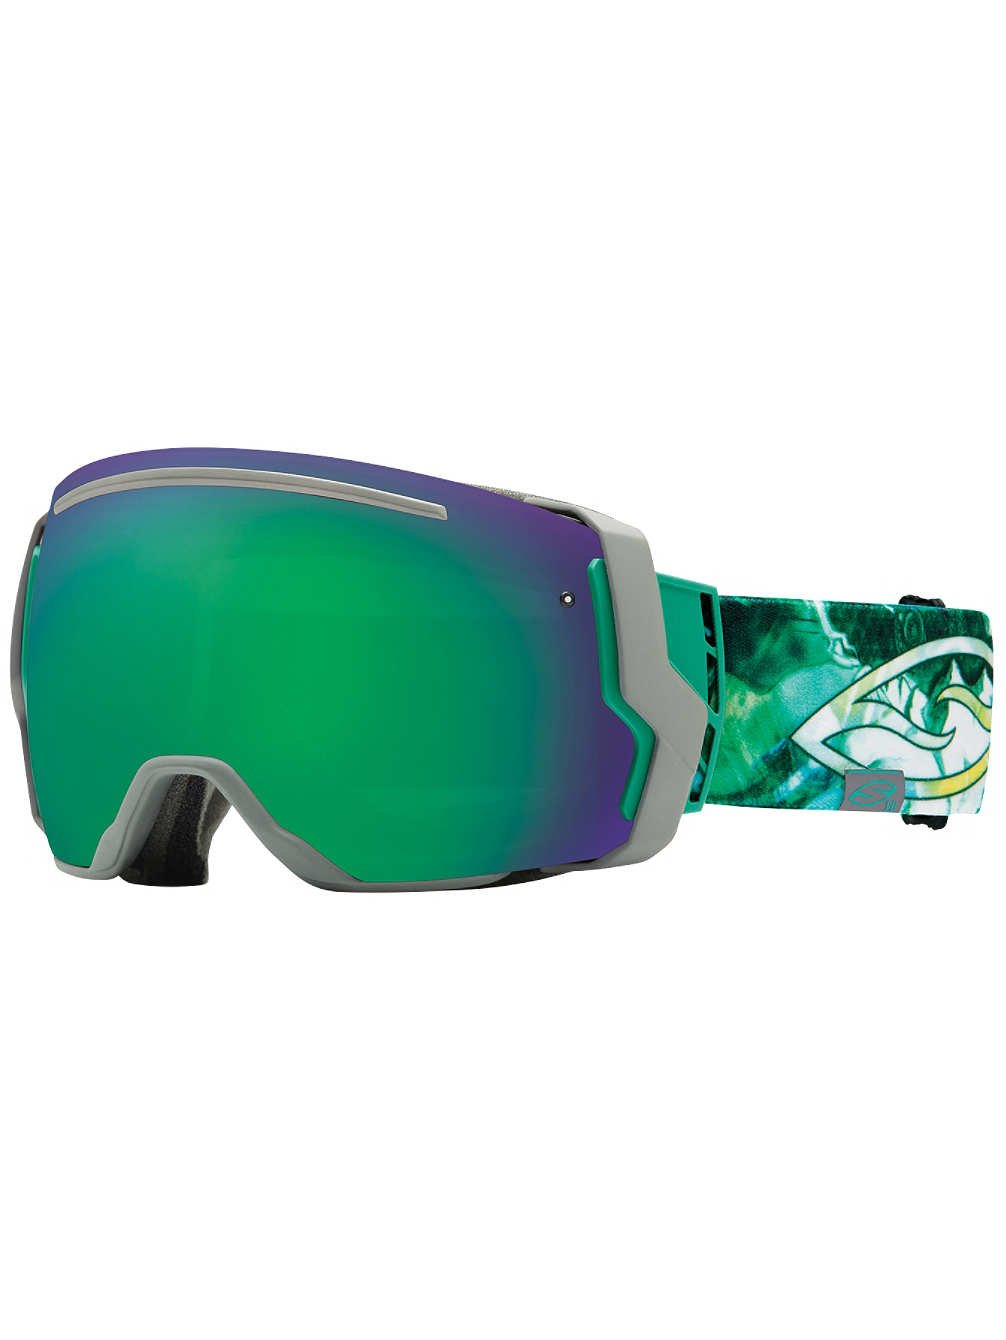 Smith Optics I/O7 Vaporator Series Snocross Snowmobile Goggles Eyewear - Lago Thorns/Blackout/Red Sensor / Medium